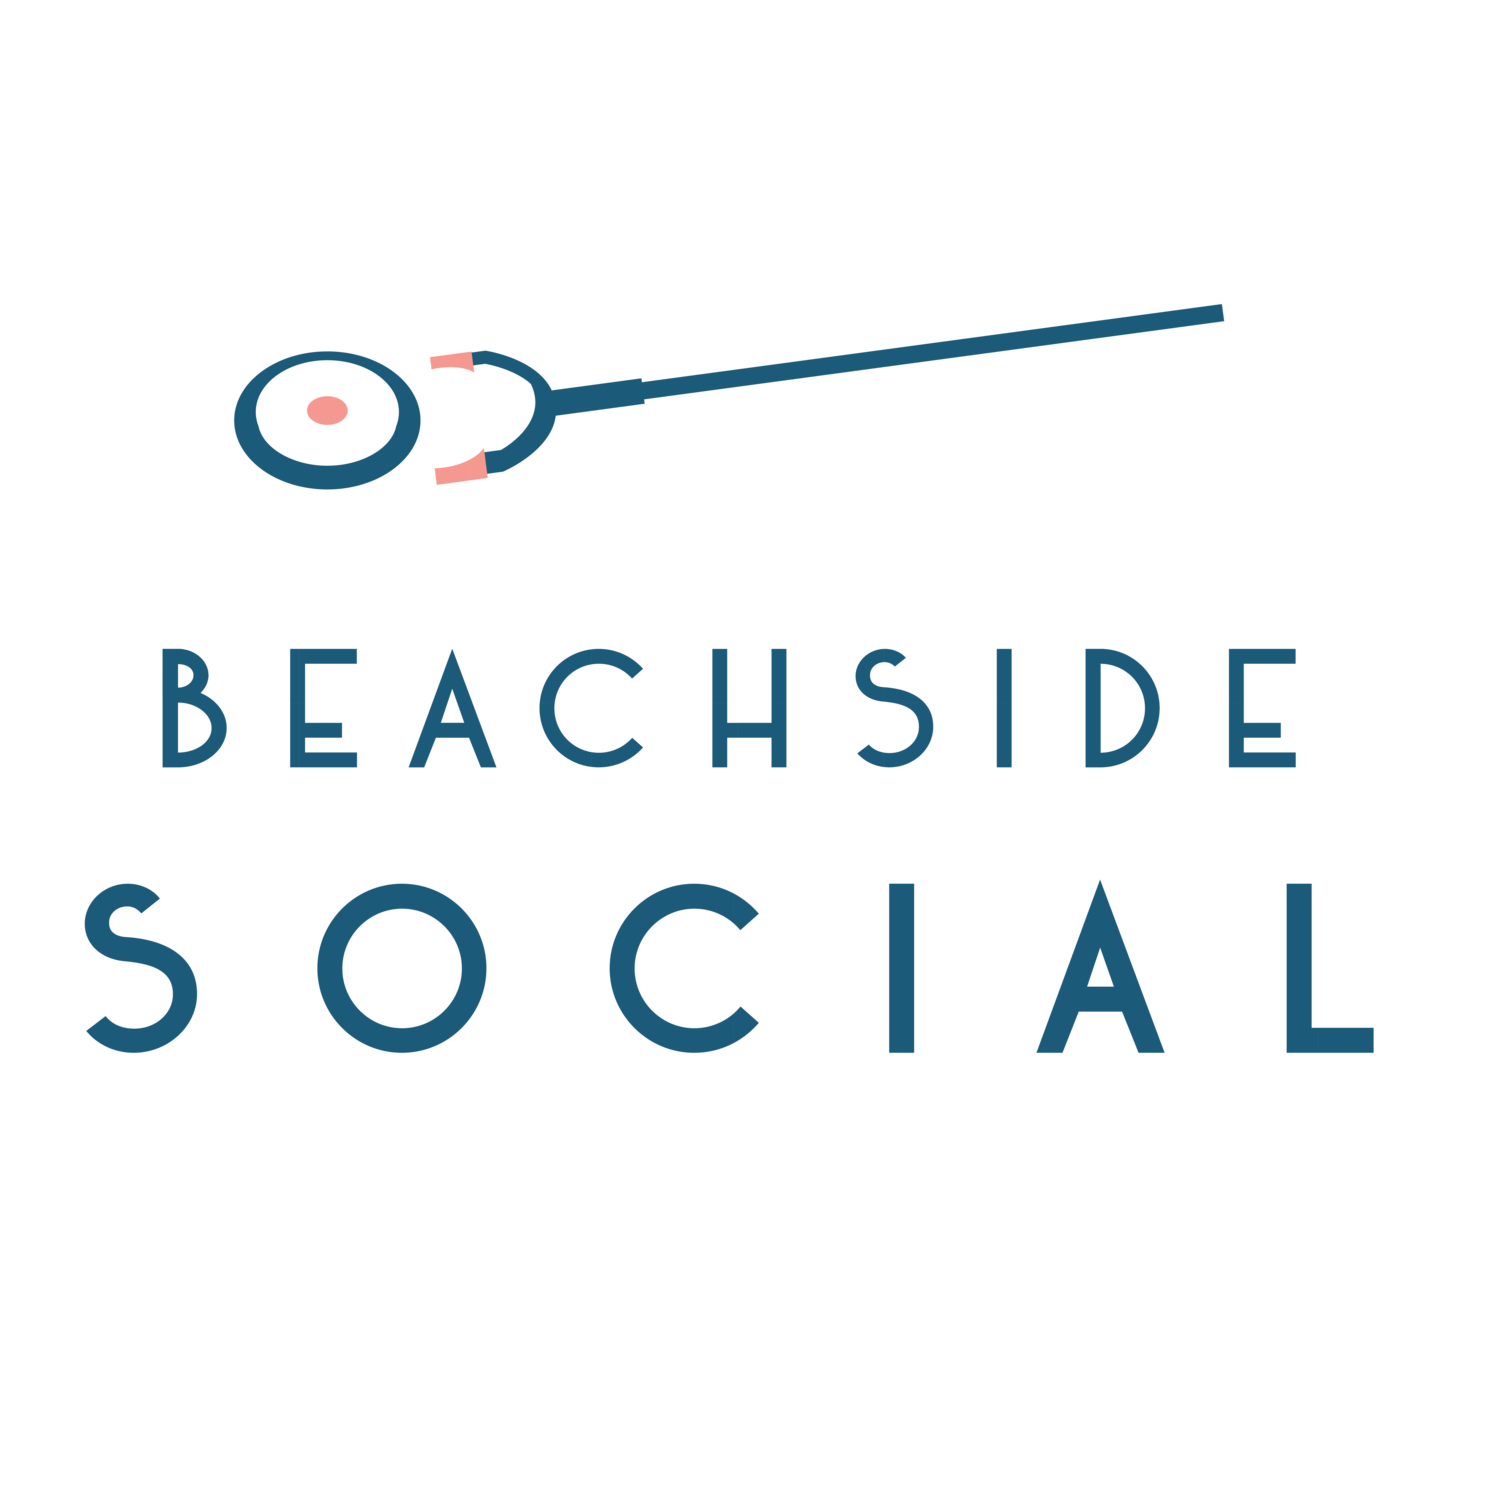 Beachside Social